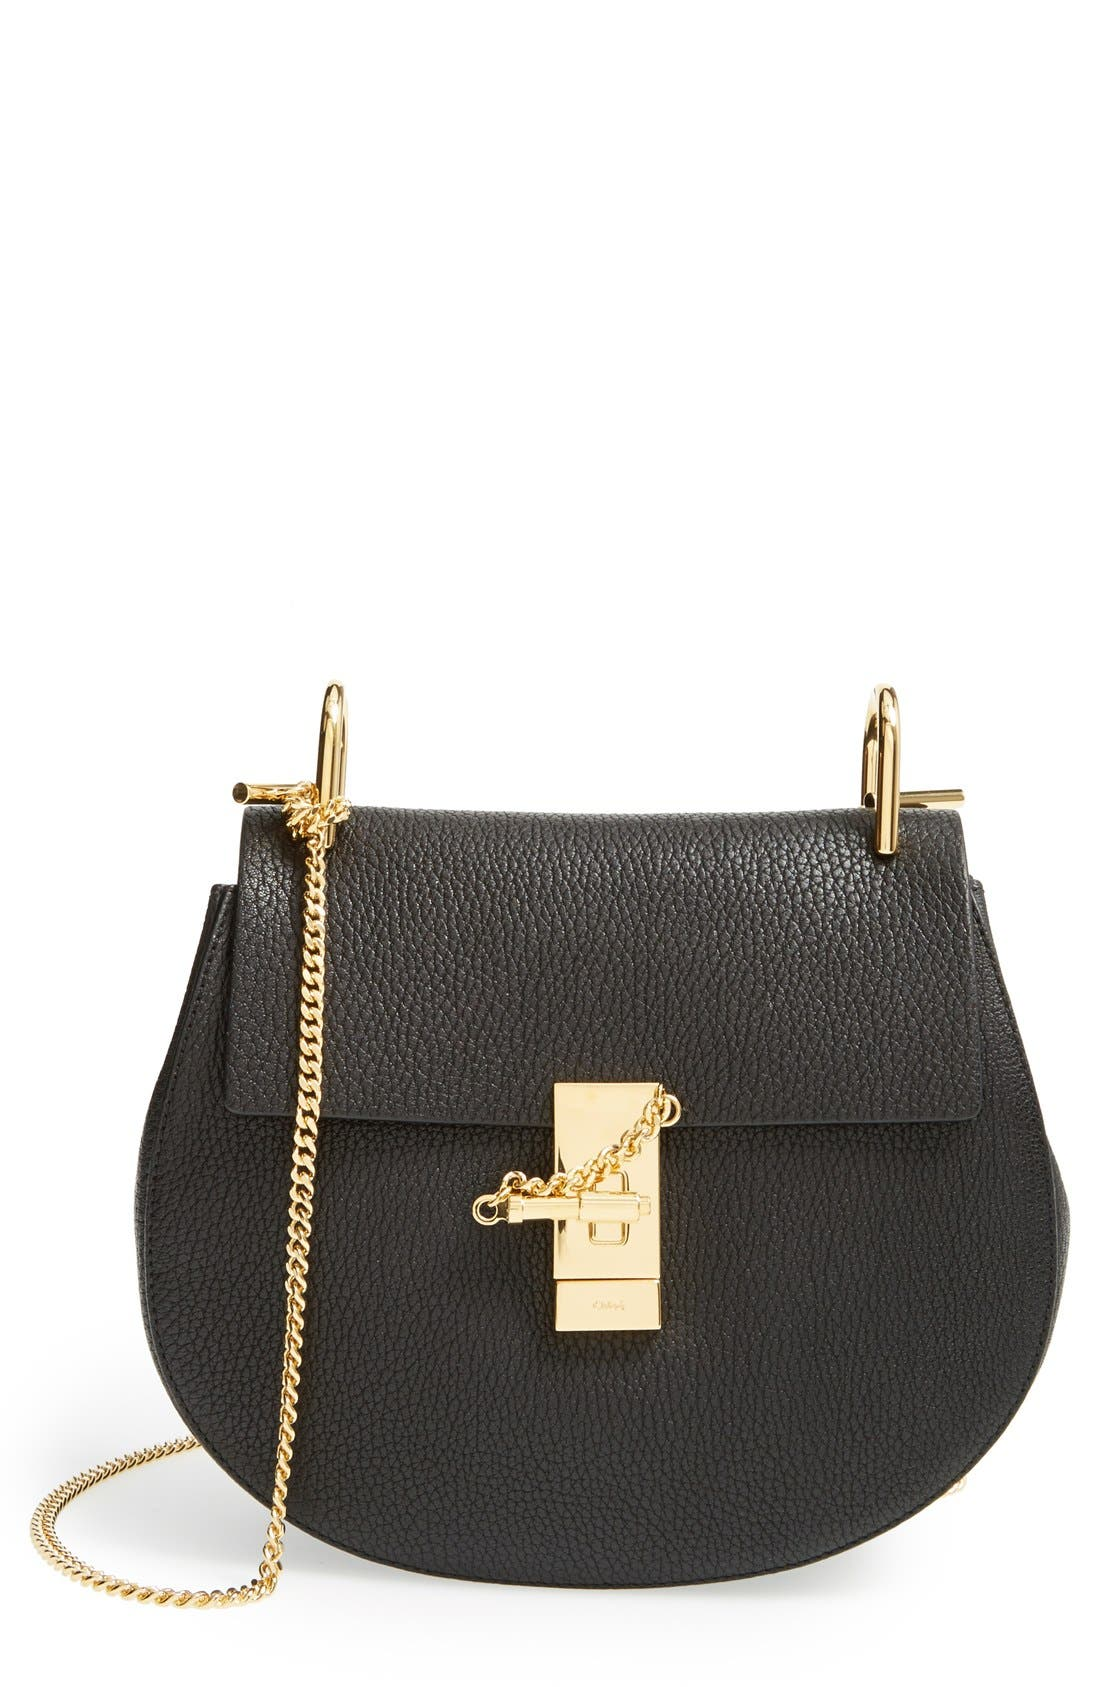 CHLOÉ, Drew Leather Shoulder Bag, Main thumbnail 1, color, BLACK GOLD HRDWRE